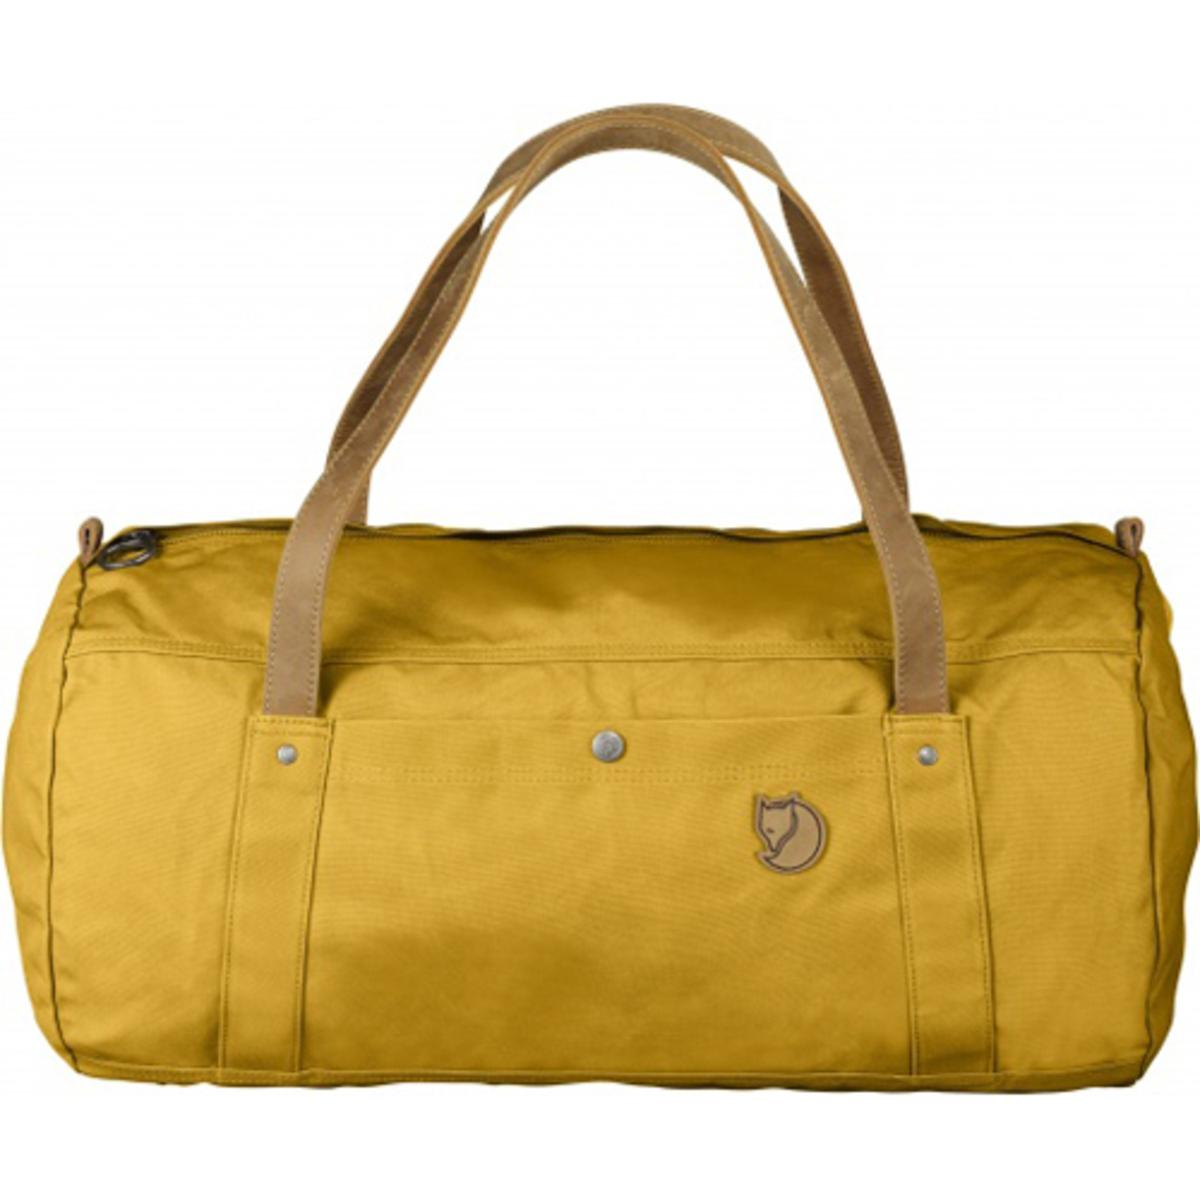 432a6e98c1 FjallRaven Duffel No. 4 Large Bag - The Warming Store